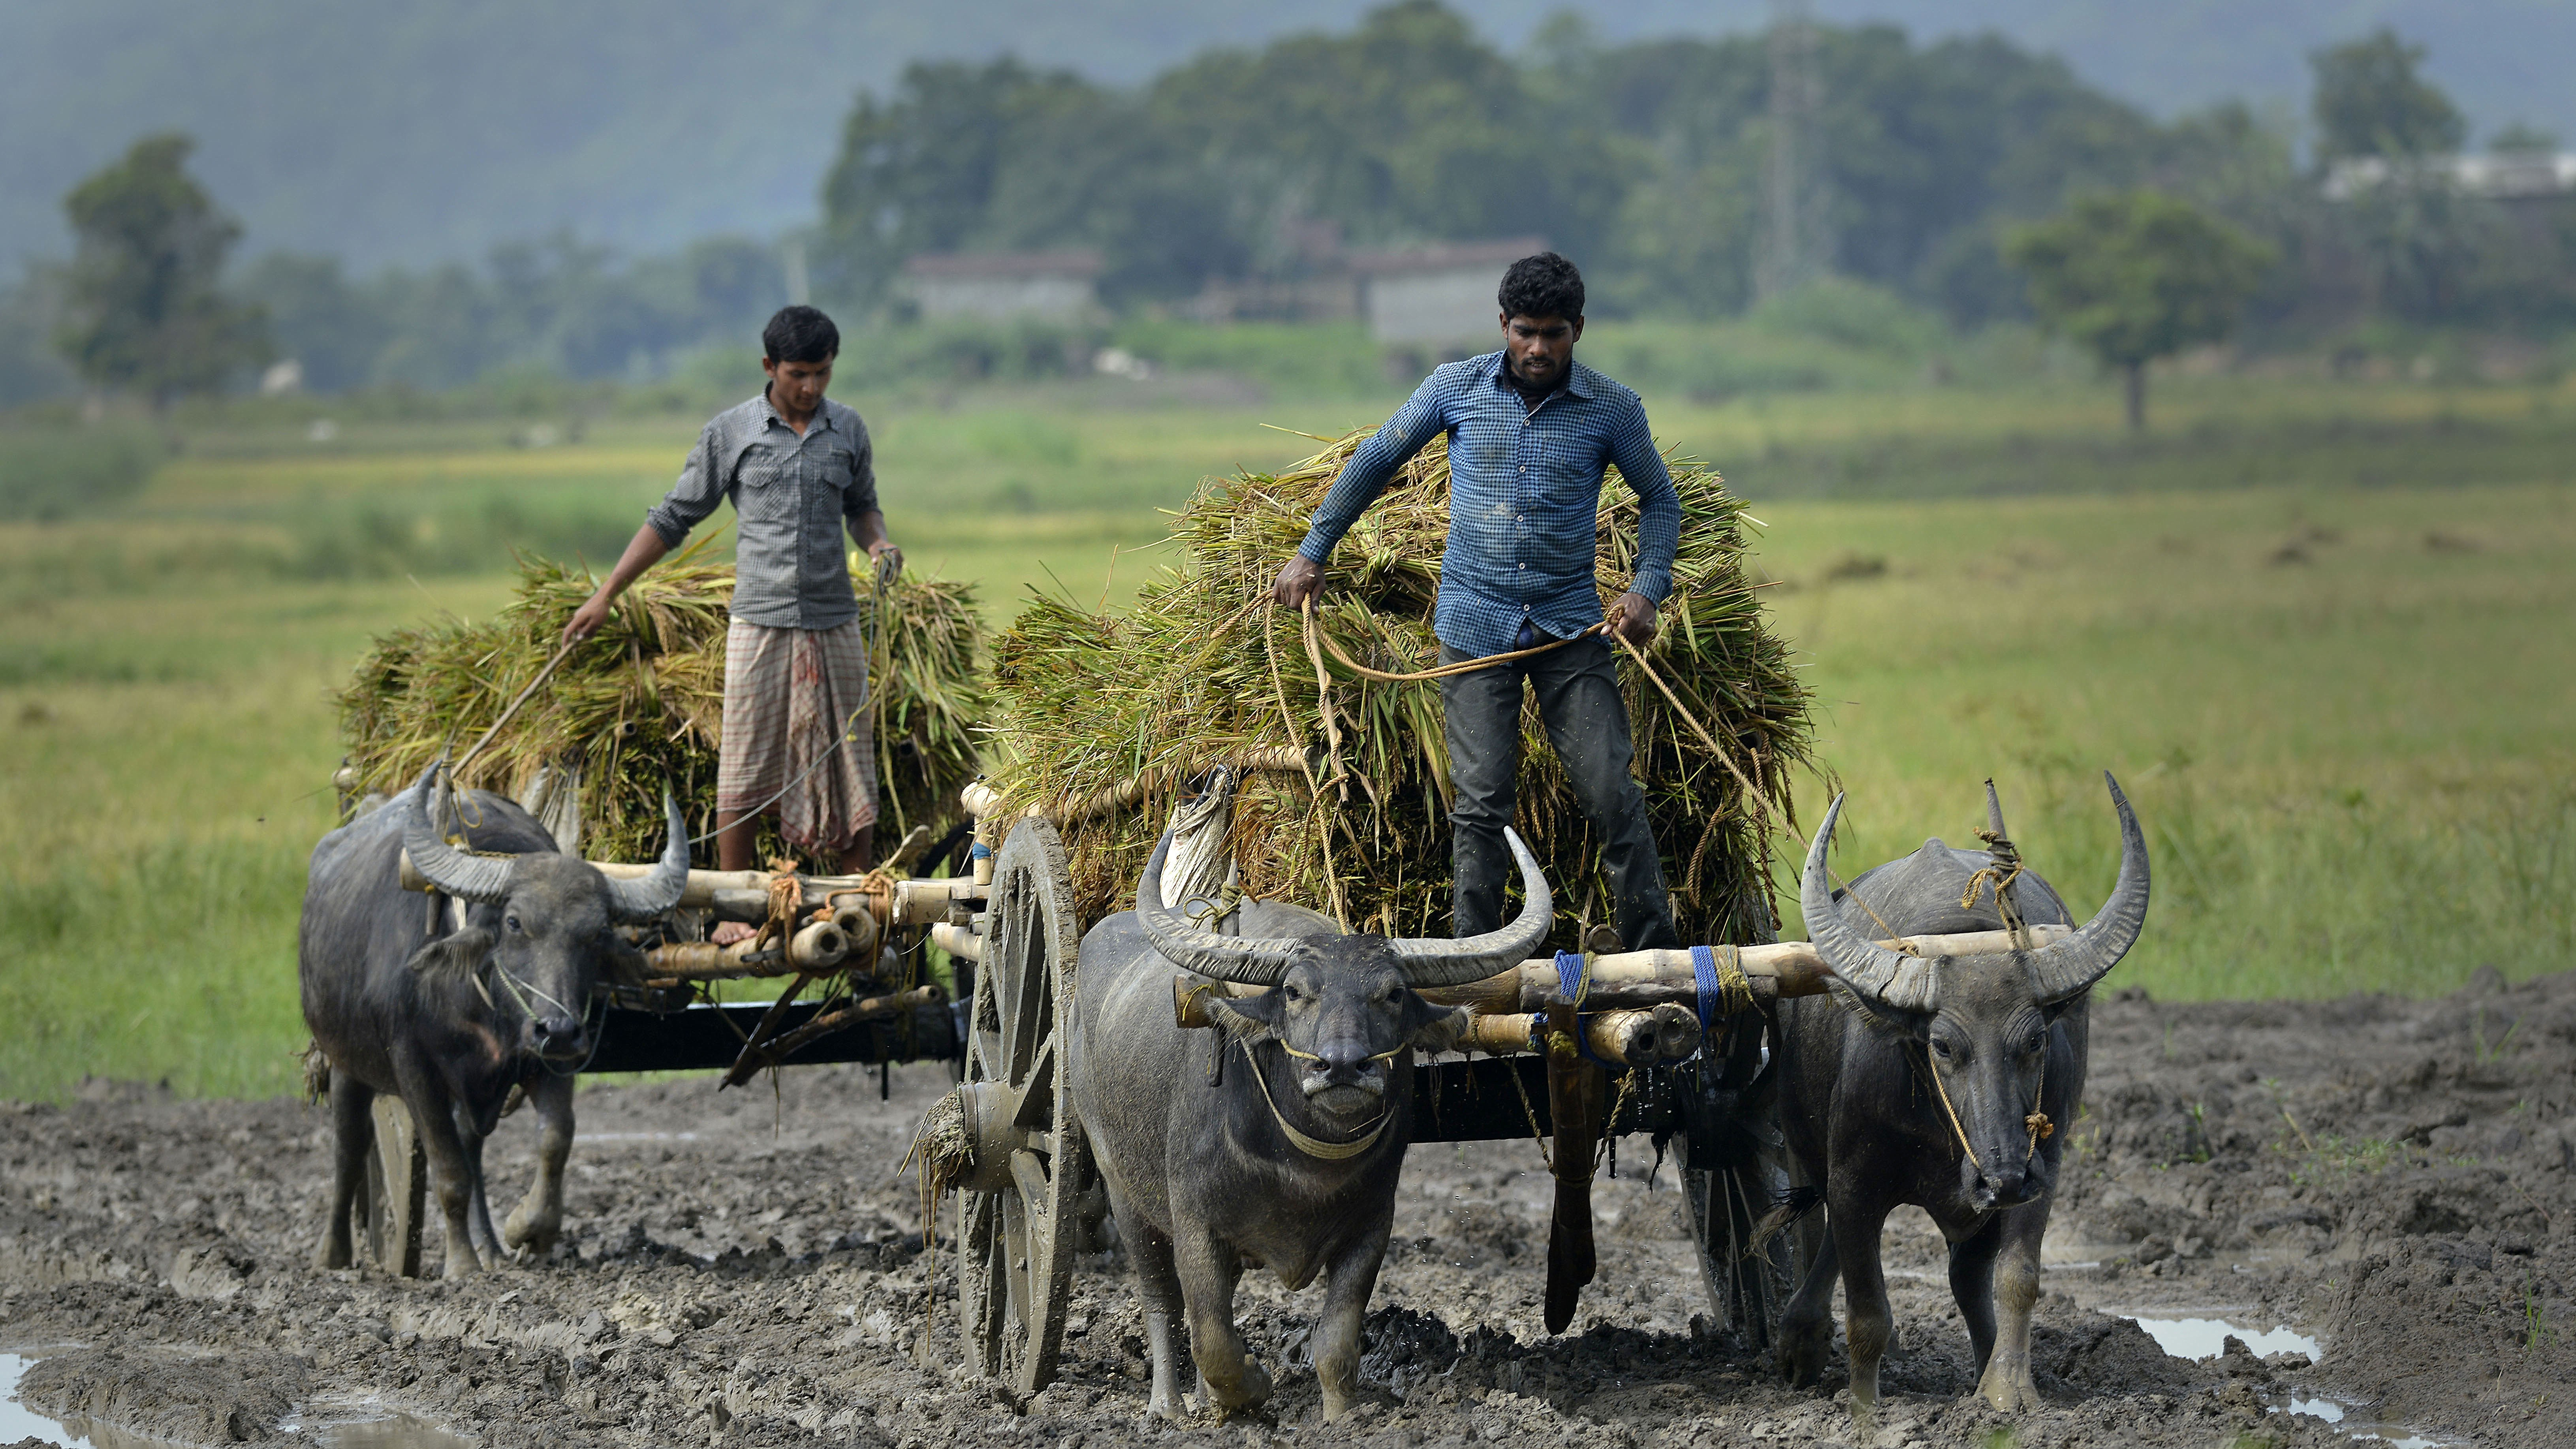 25,000 Indian Farmers Are Threatening to Kill Themselves Tomorrow